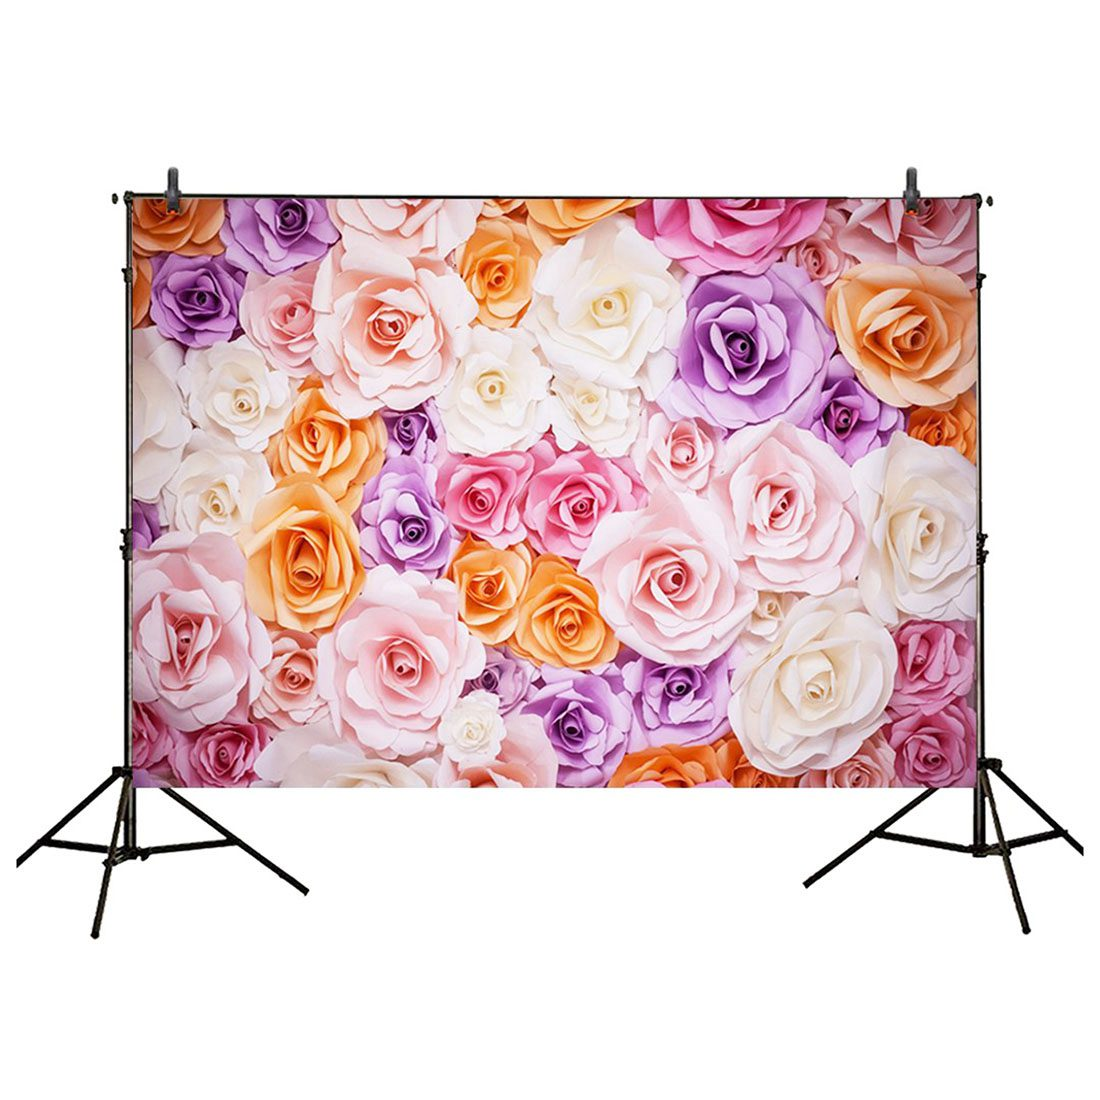 Top deals 7x5ft photography backdrop 3d color paper flower wall top deals 7x5ft photography backdrop 3d color paper flower wall gorgeous wedding baby shower beautiful bride shower background in background from consumer mightylinksfo